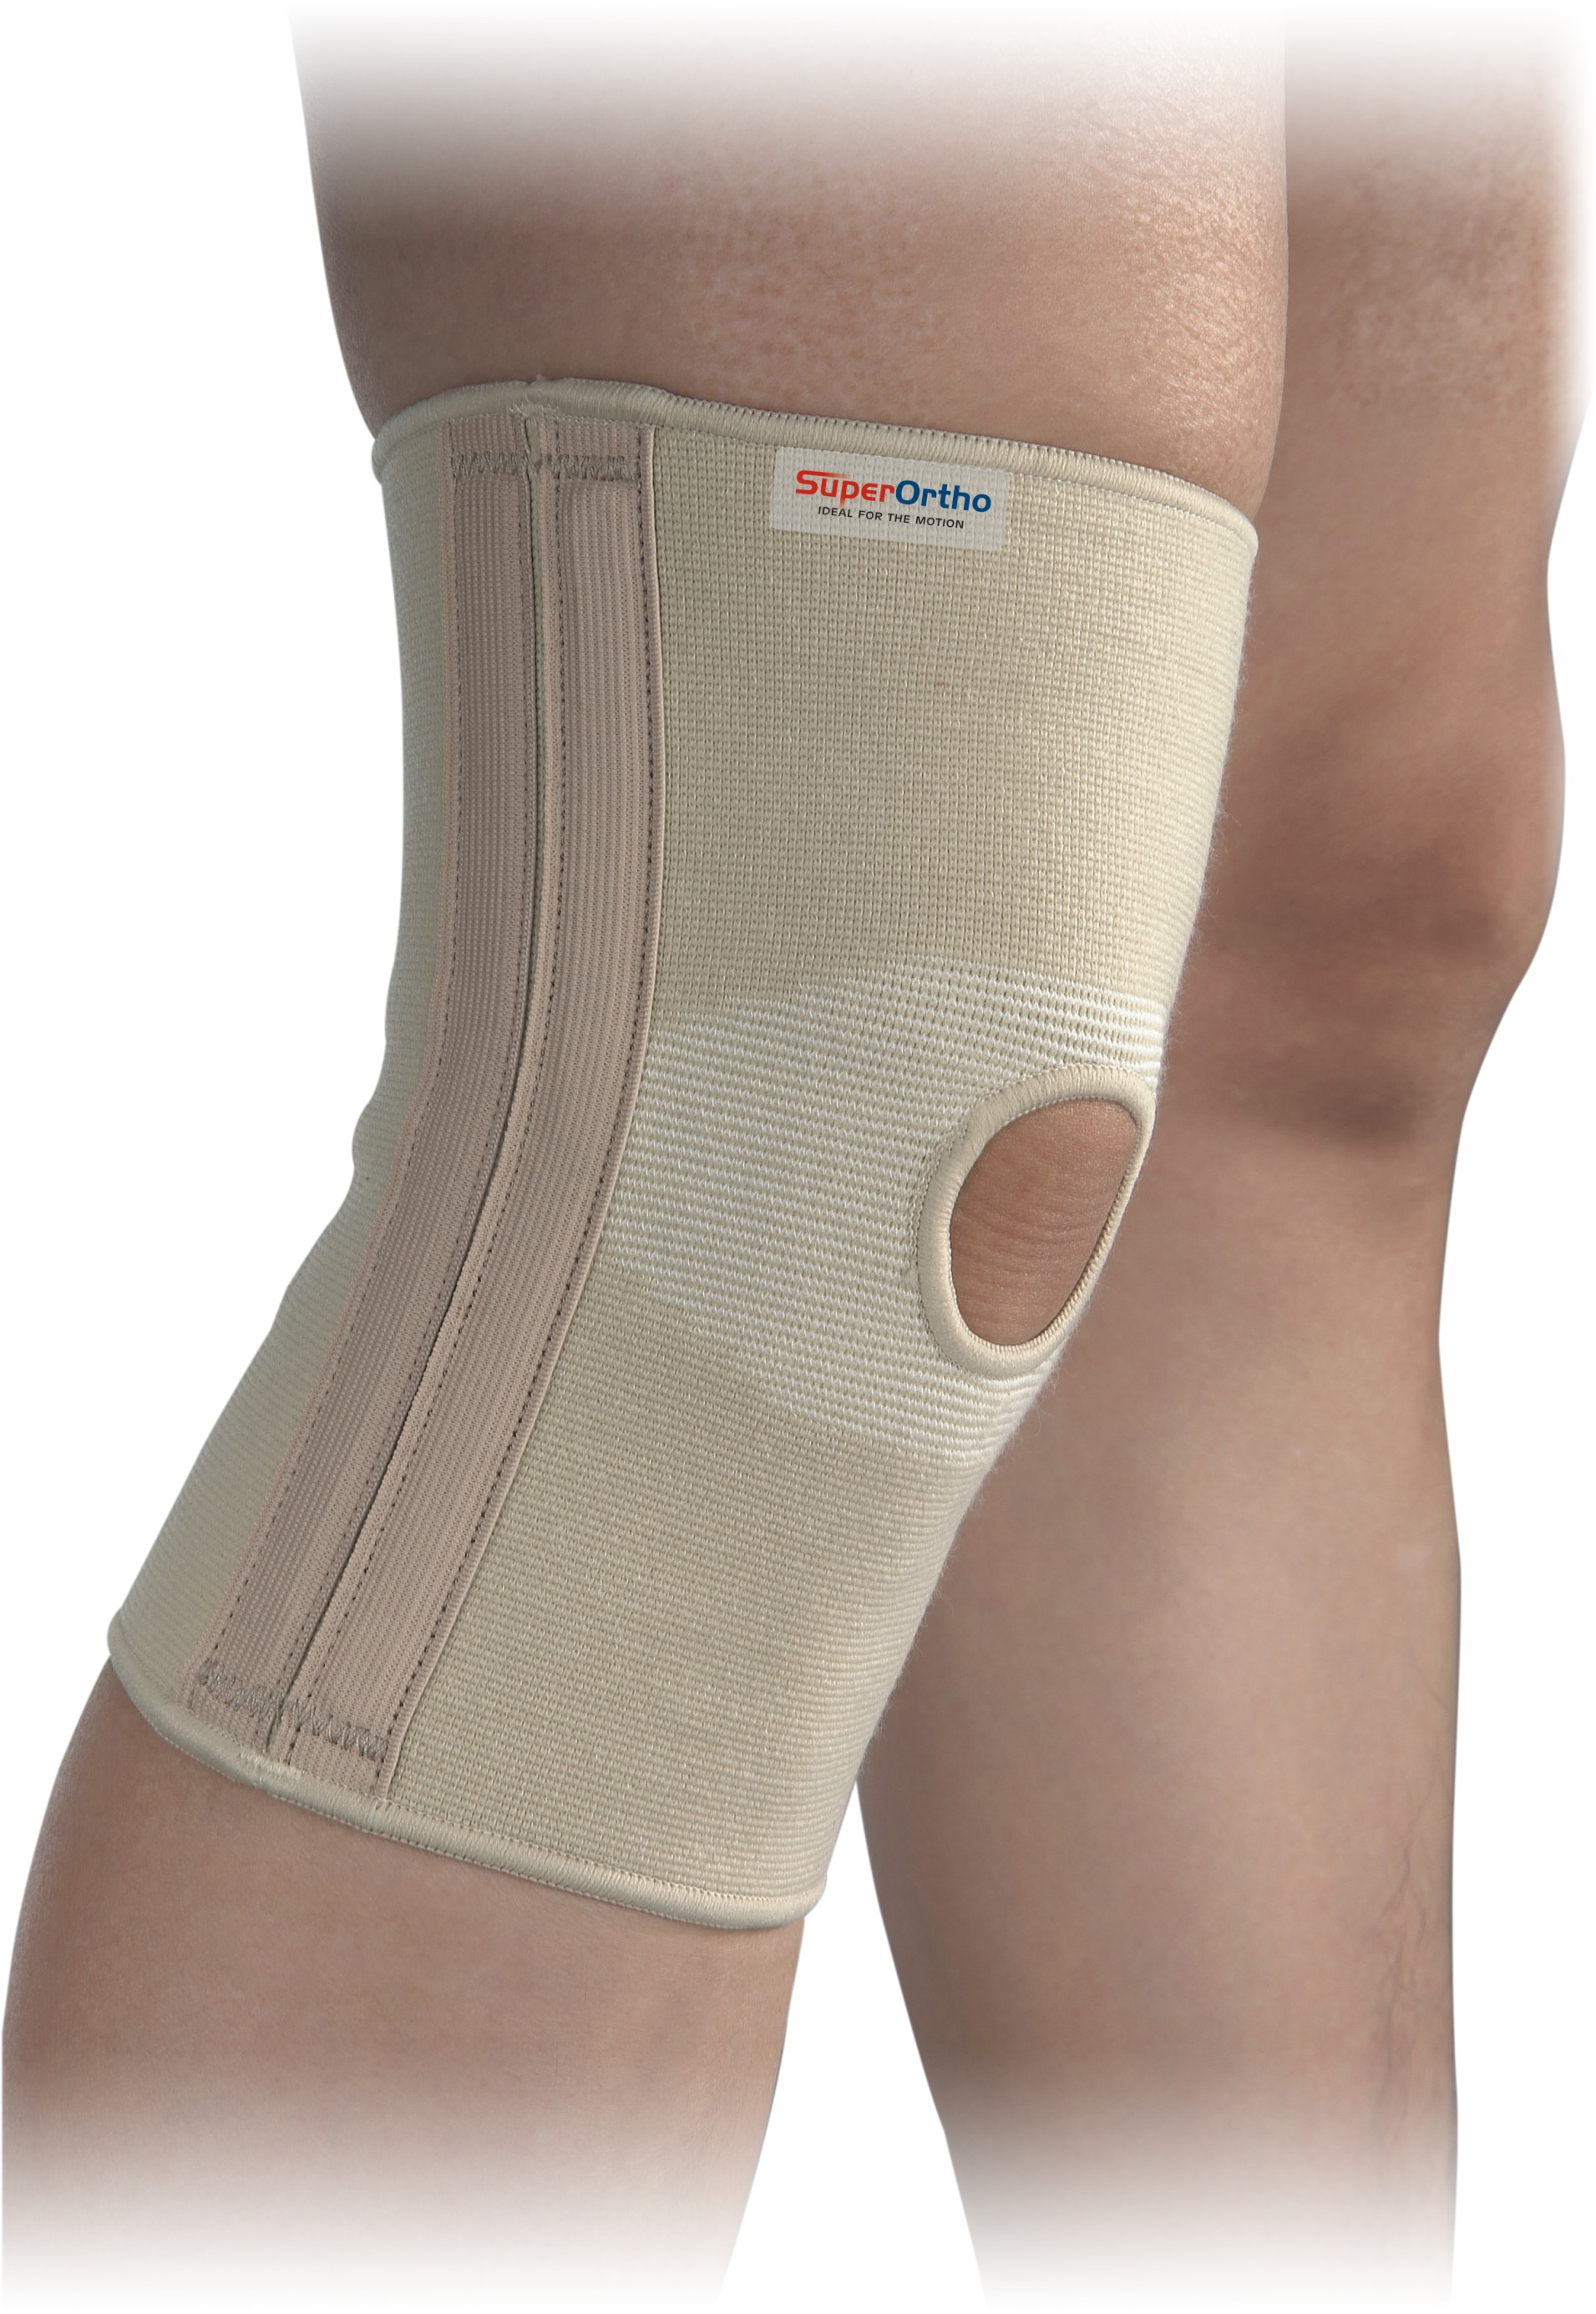 Knee Support w/ 4 Spiral Stays